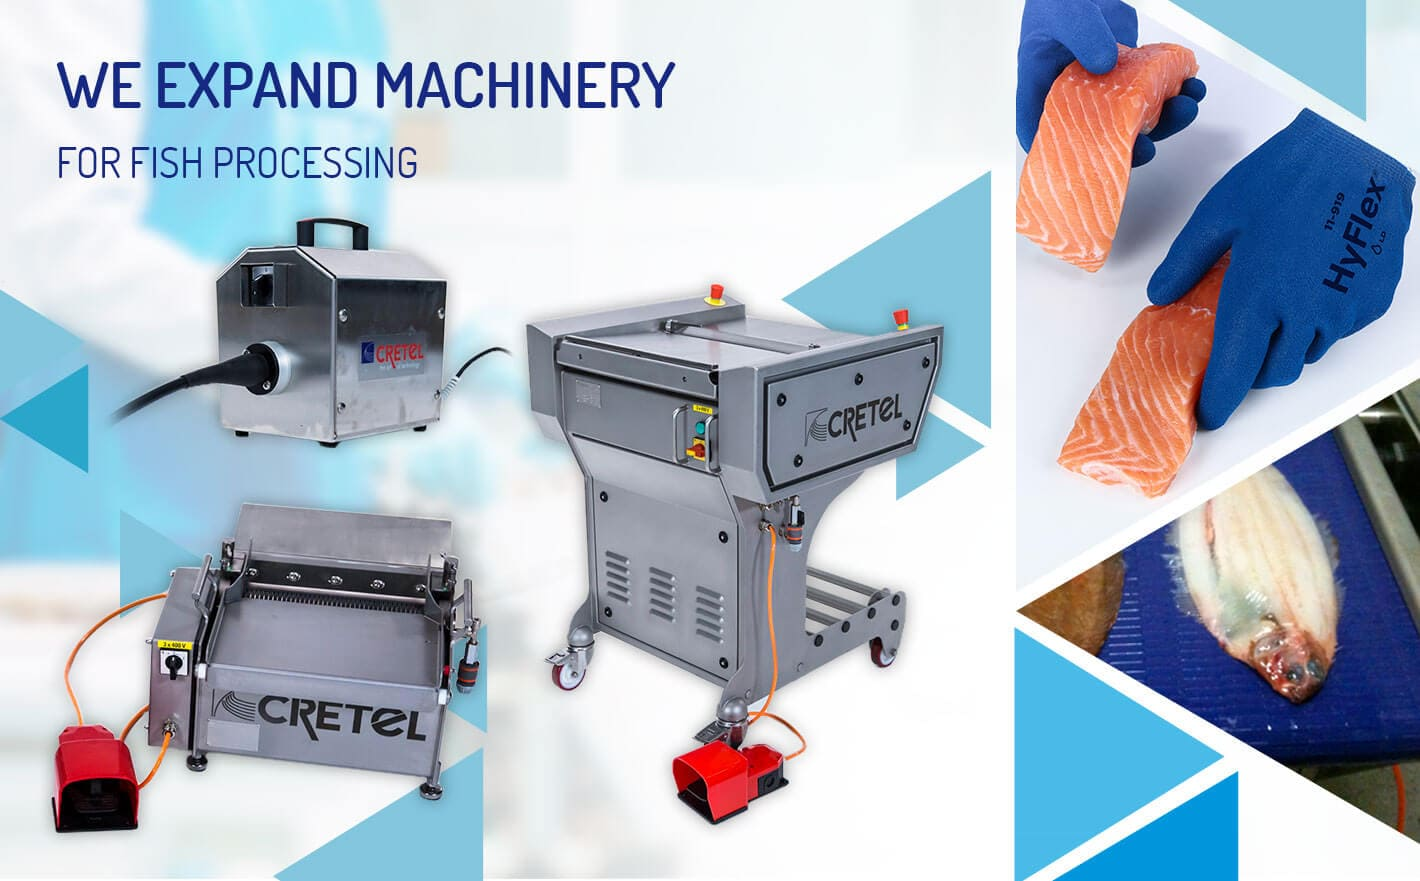 We expand machinery for fish processing